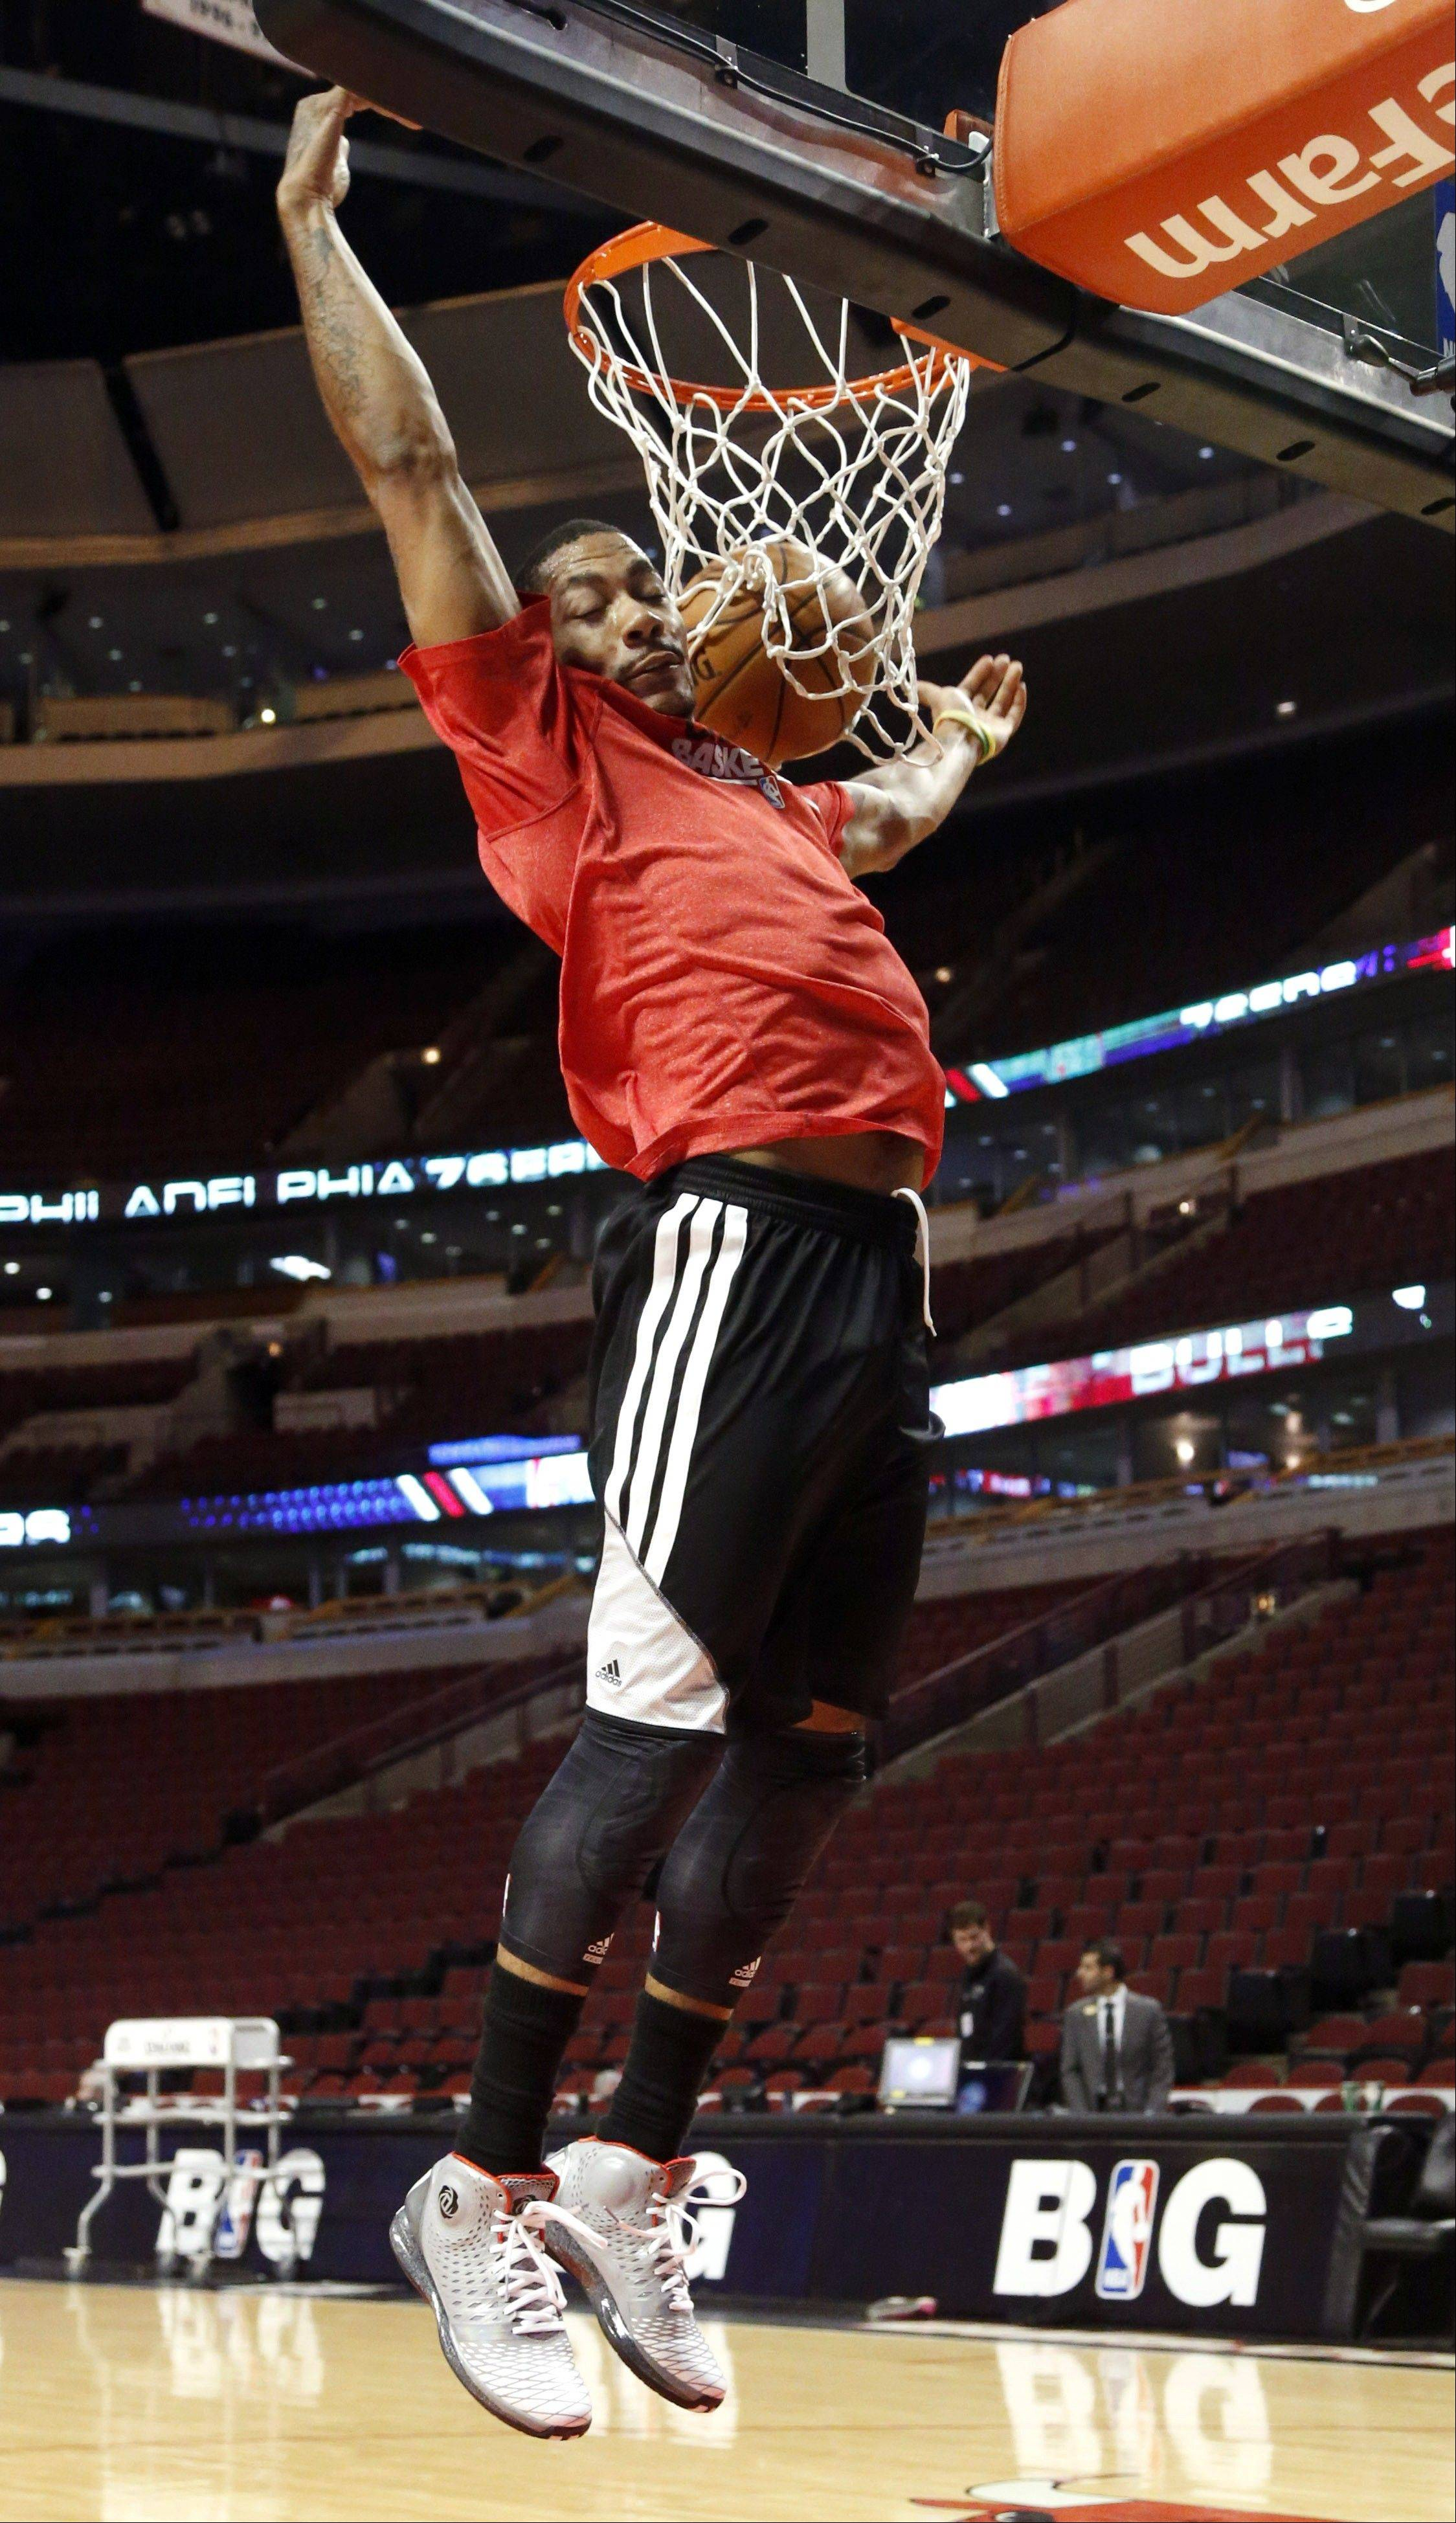 Chicago Bulls guard Derrick Rose dunks during a workout before an NBA basketball game against the Philadelphia 76ers, Thursday, Feb. 28, 2013, in Chicago. Rose remains out while recovering from a knee injury.